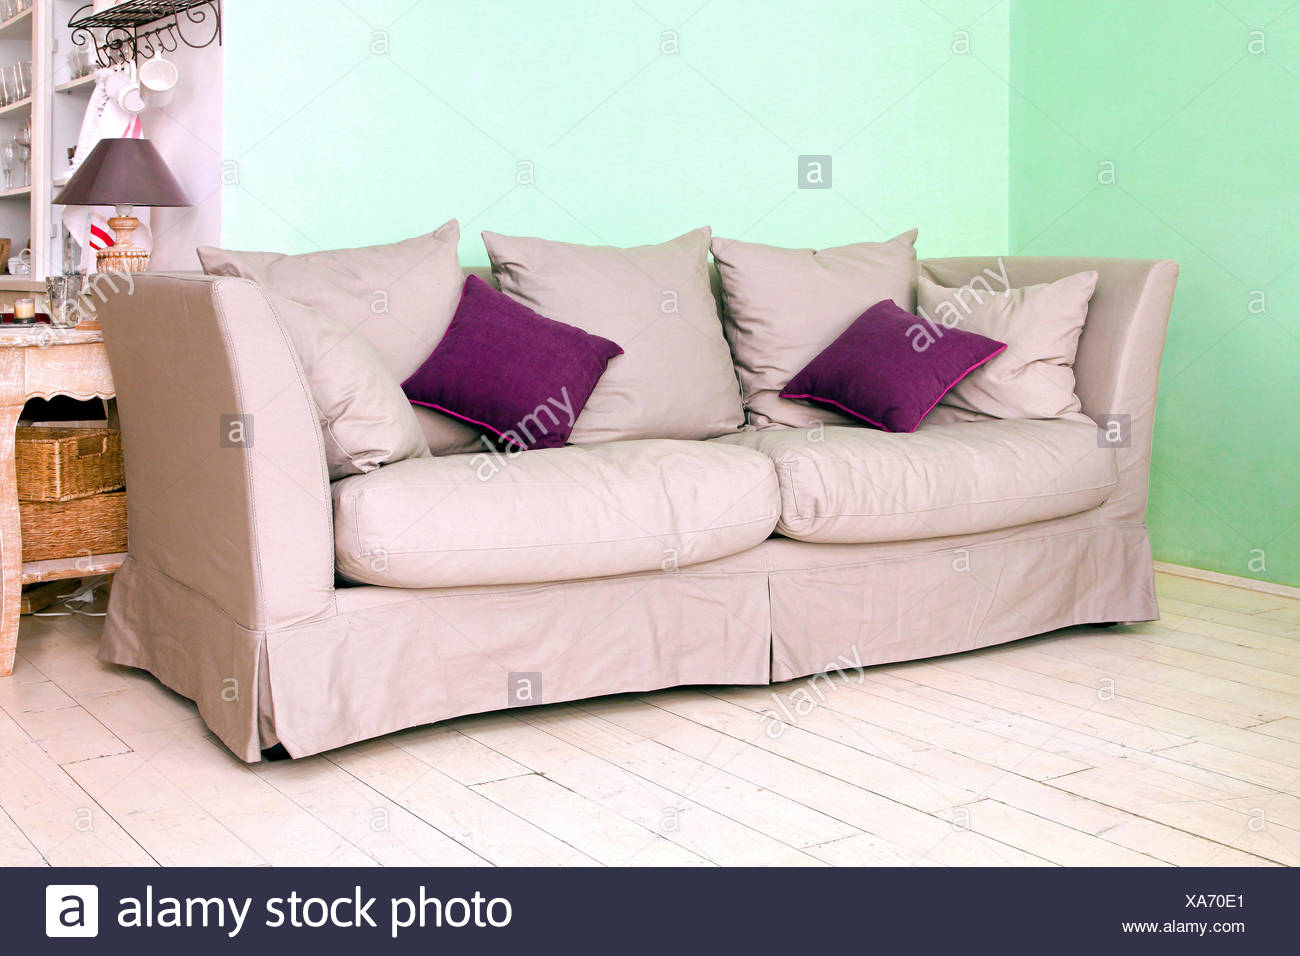 Couch - Stock Image